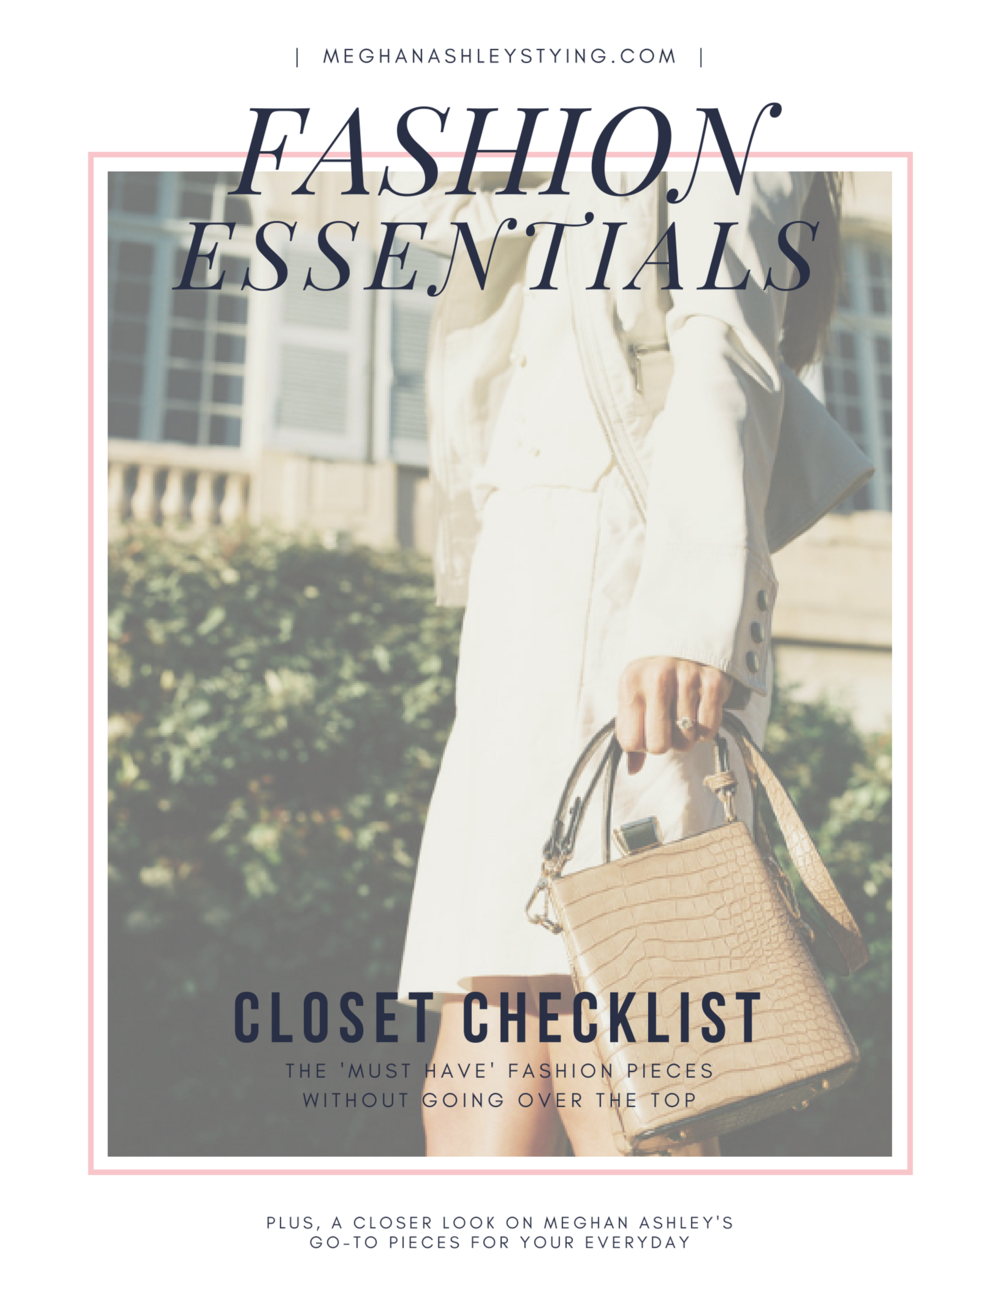 Your Closet Essentials is Waiting for You! - I am so delighted to give you this closet essentials...Click here to open and learn.